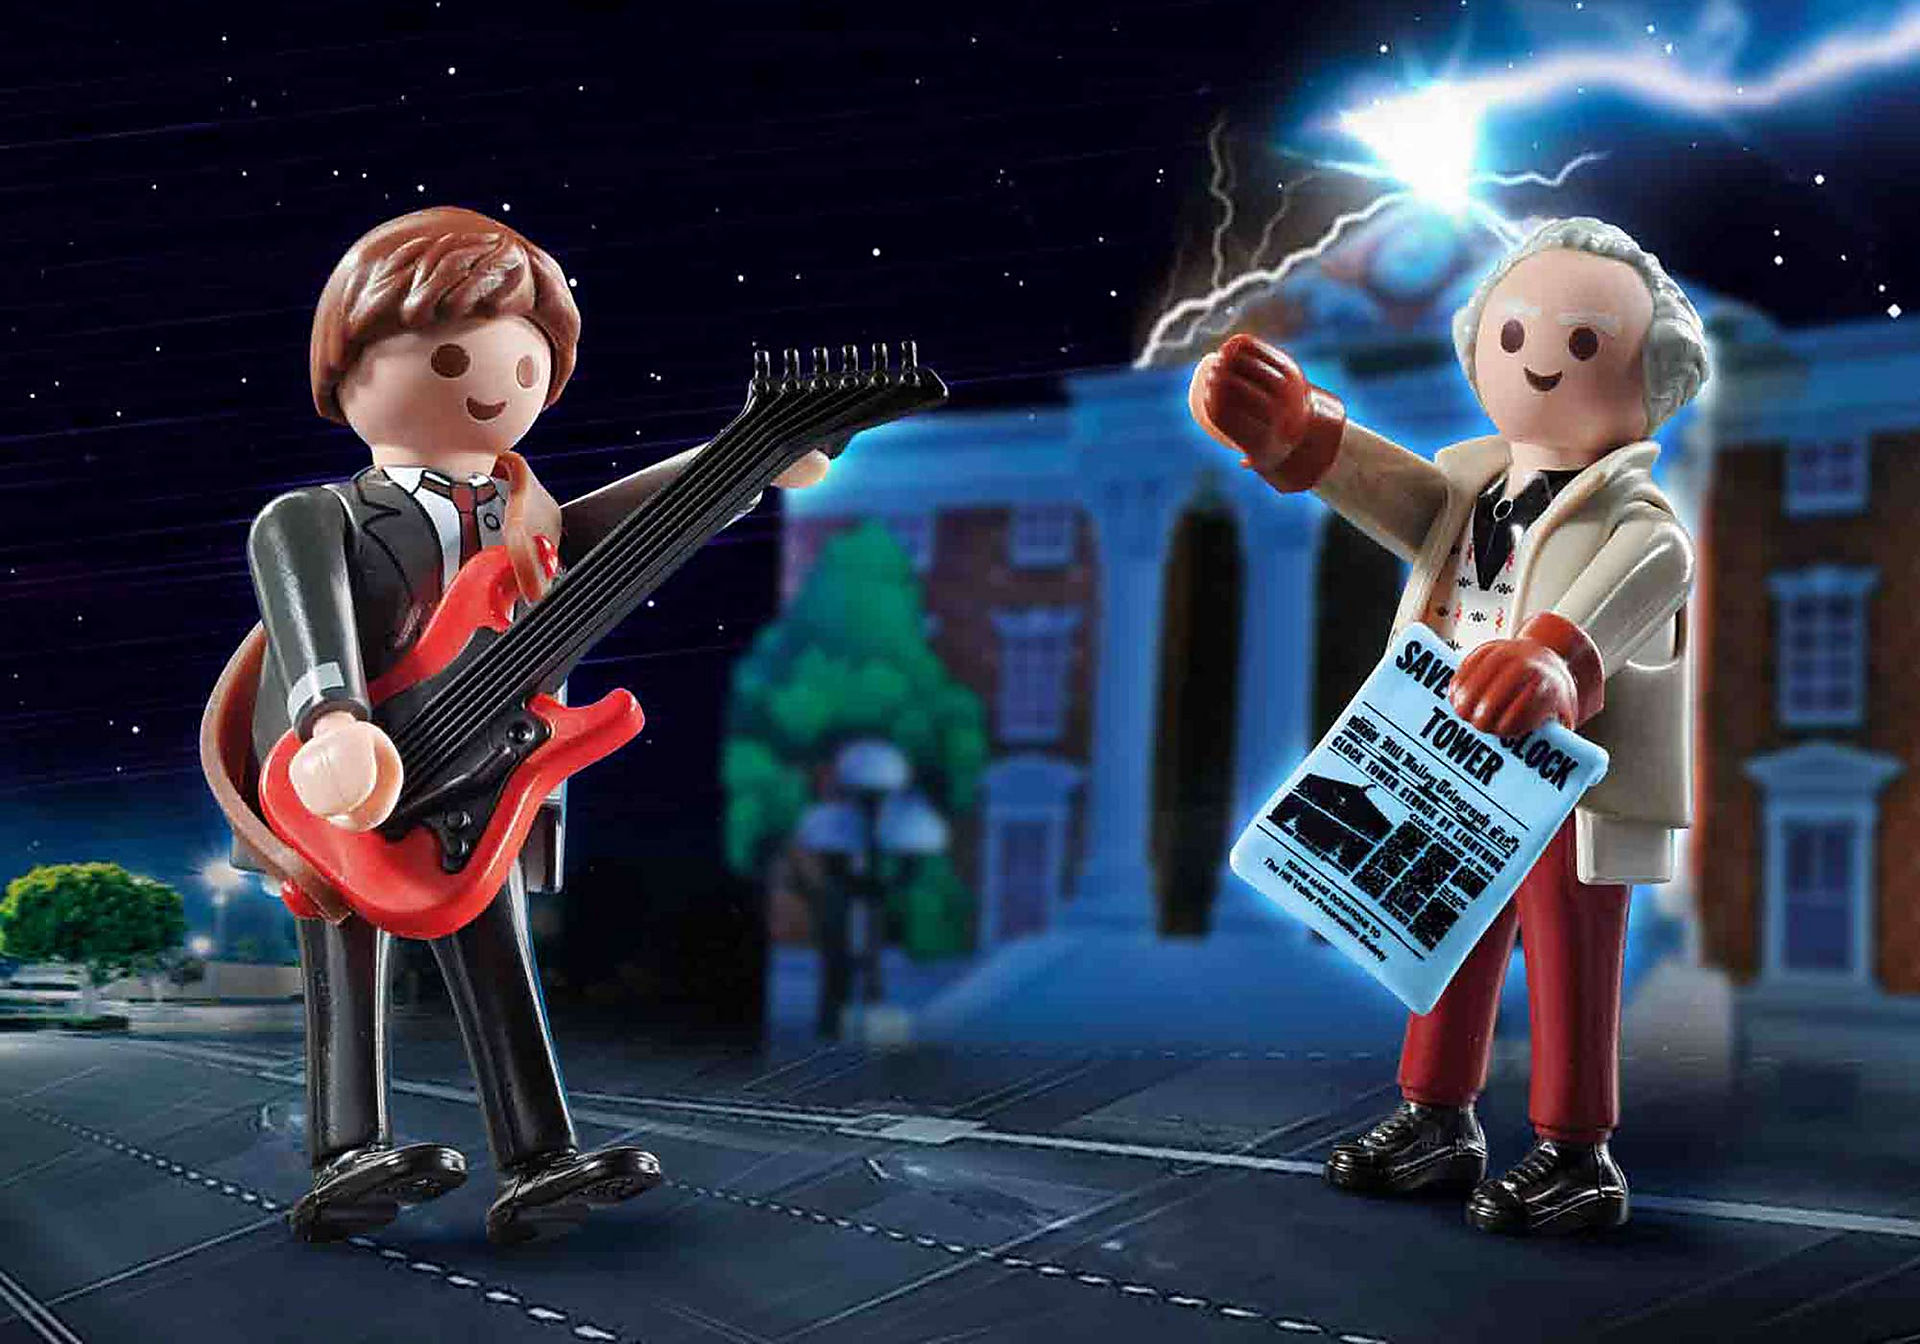 70459 Back to the Future Marty McFly und Dr. Emmett Brown zoom image1